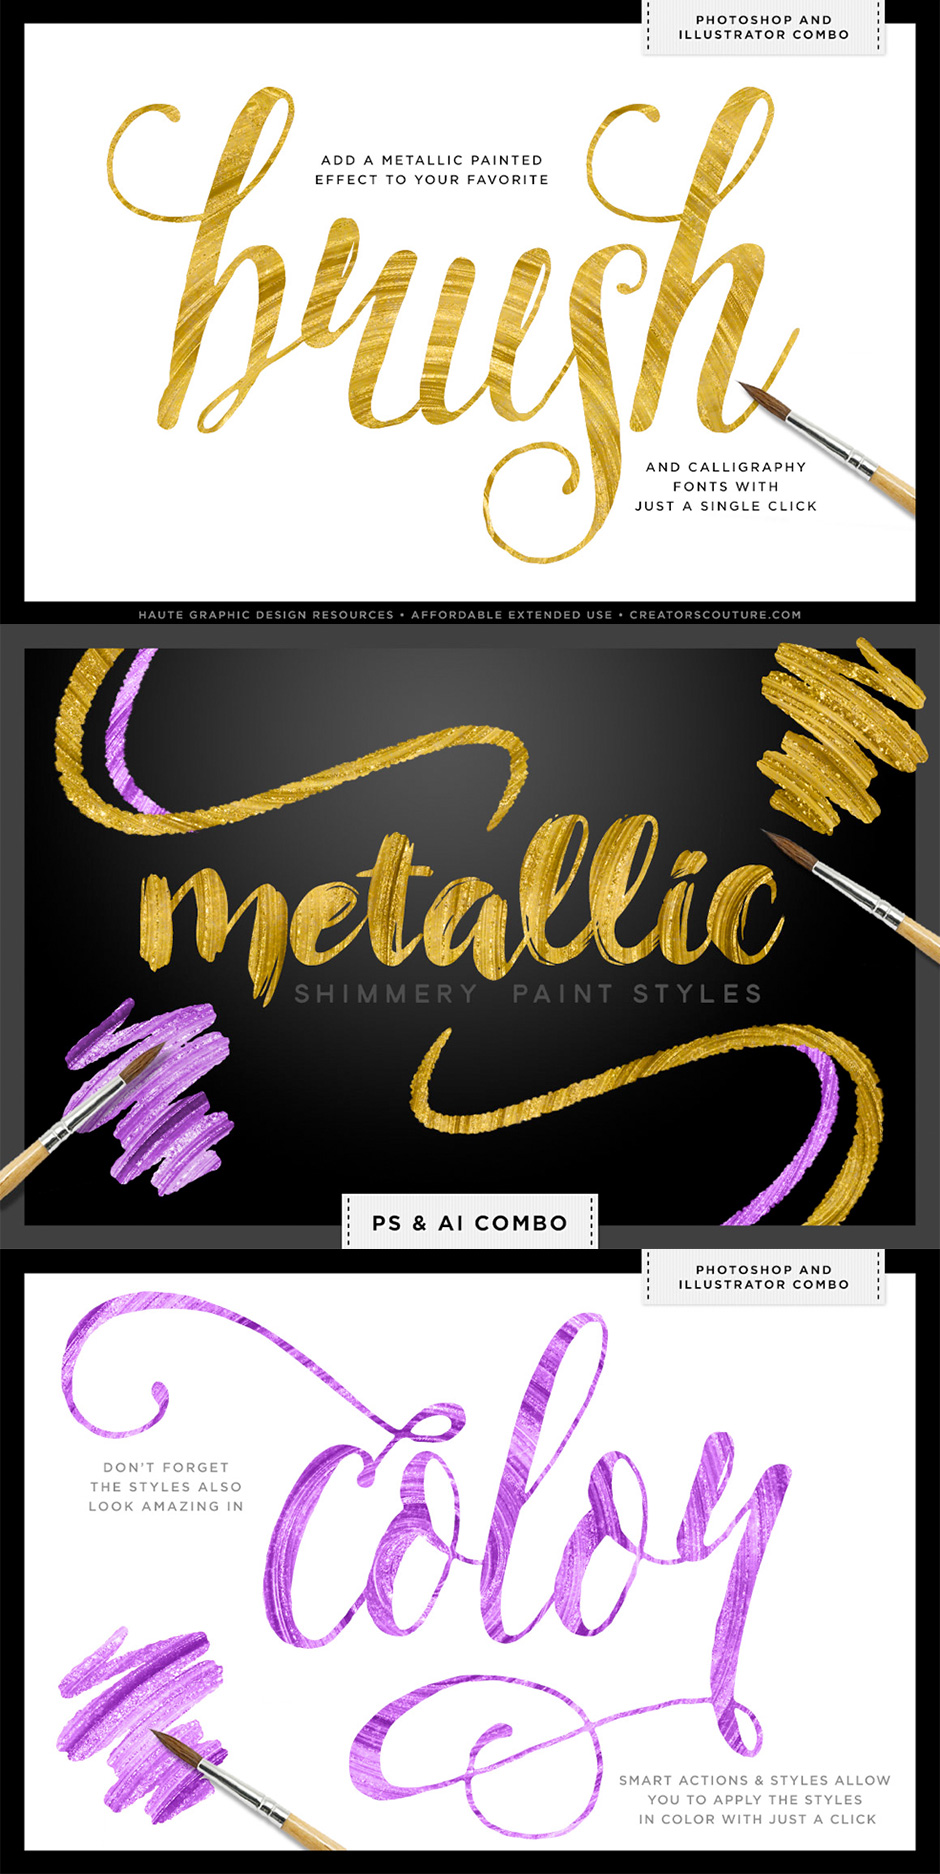 Shimmery Gold Paint Styles Bundle